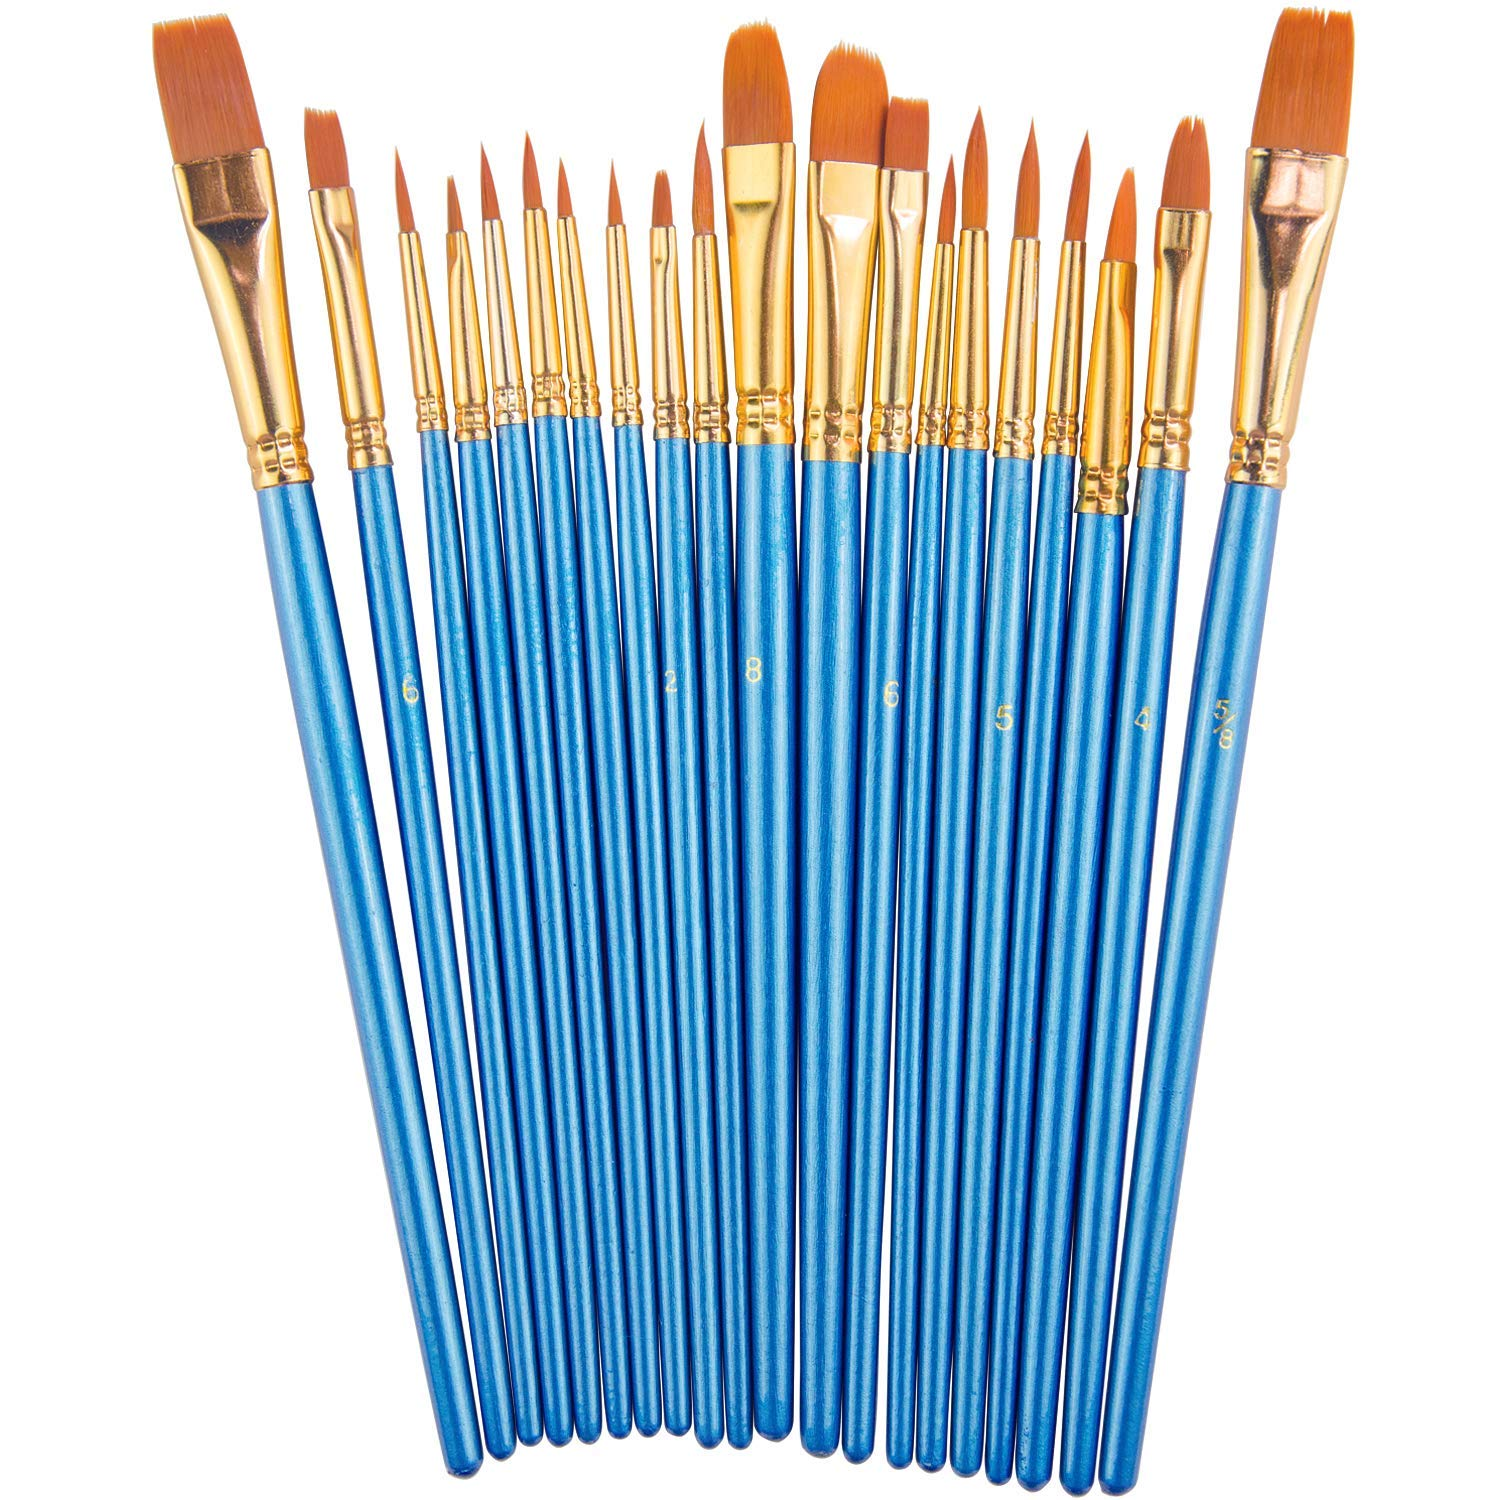 Paint Brush Set by, 20 pcs Nylon Hair Brushes for Acrylic Oil Watercolor Painting Artist Professional Painting Kits msq 11 pcs professional animal hair makeup brushes set 100